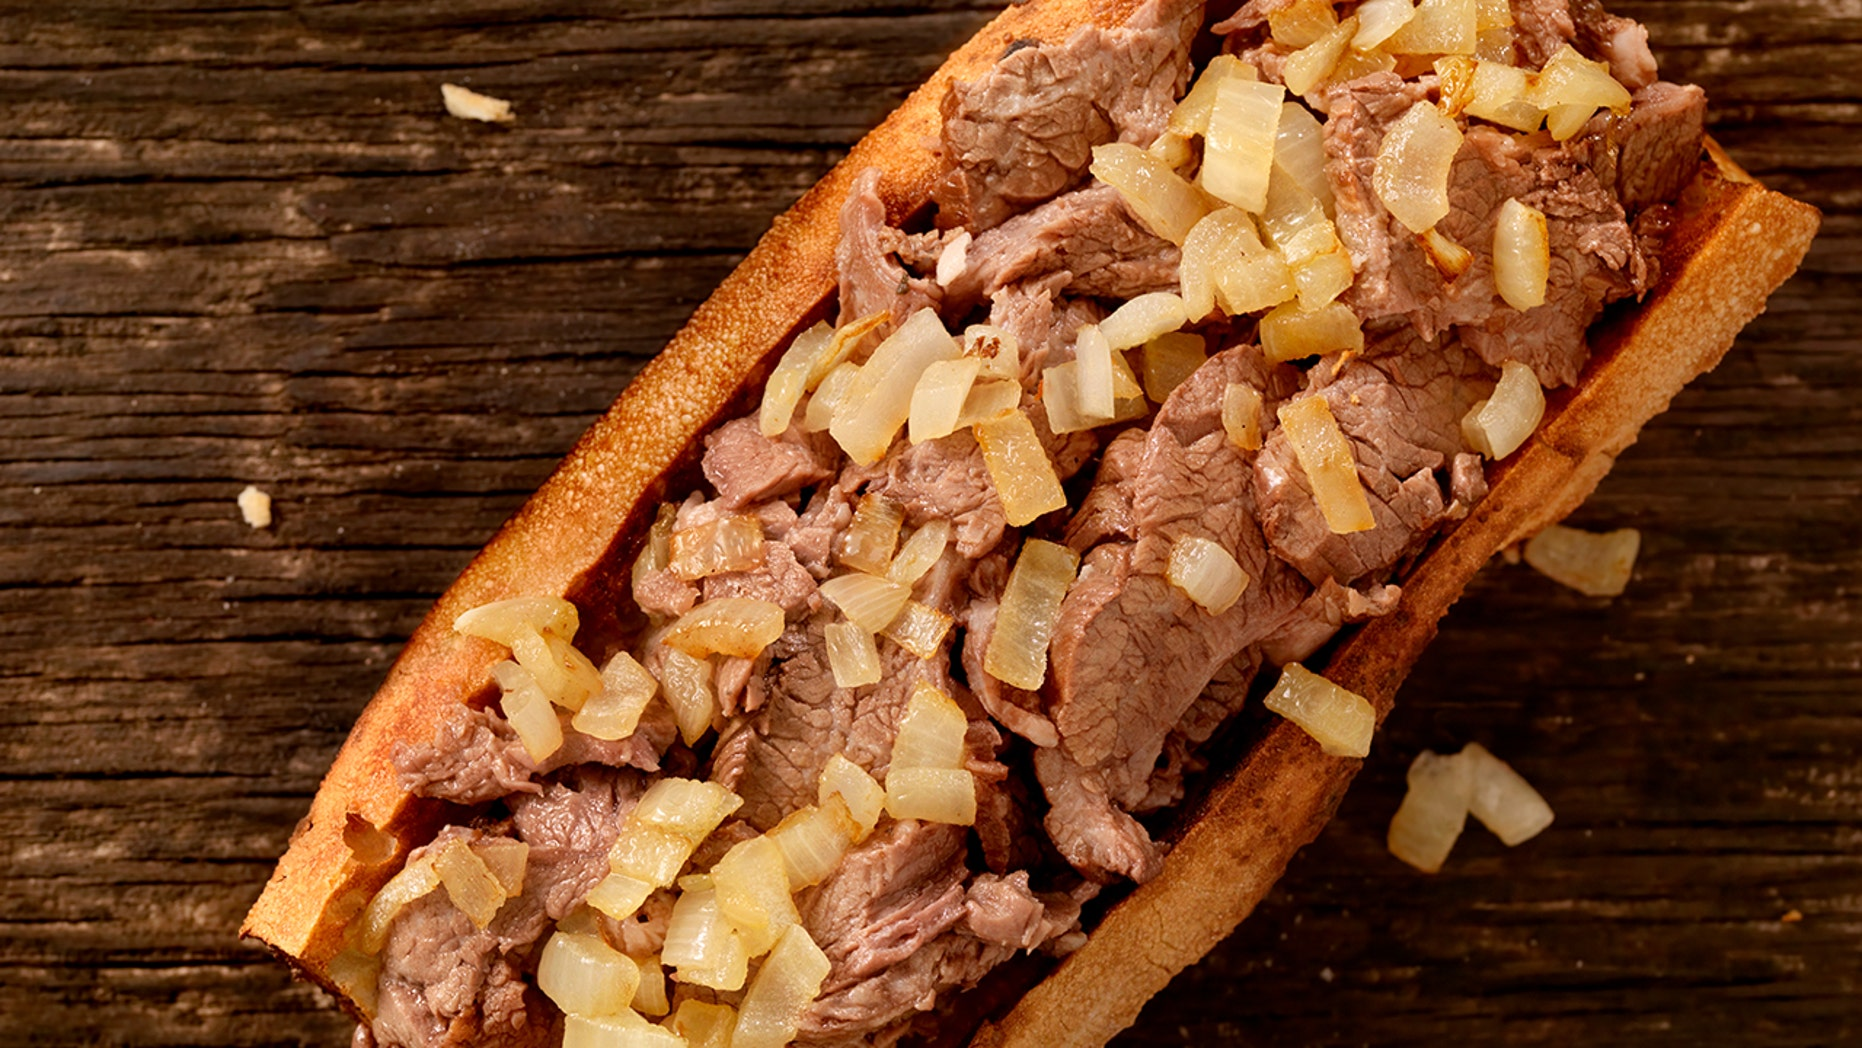 A man claims he found maggots crawling in his Wawa cheesesteak sandwich